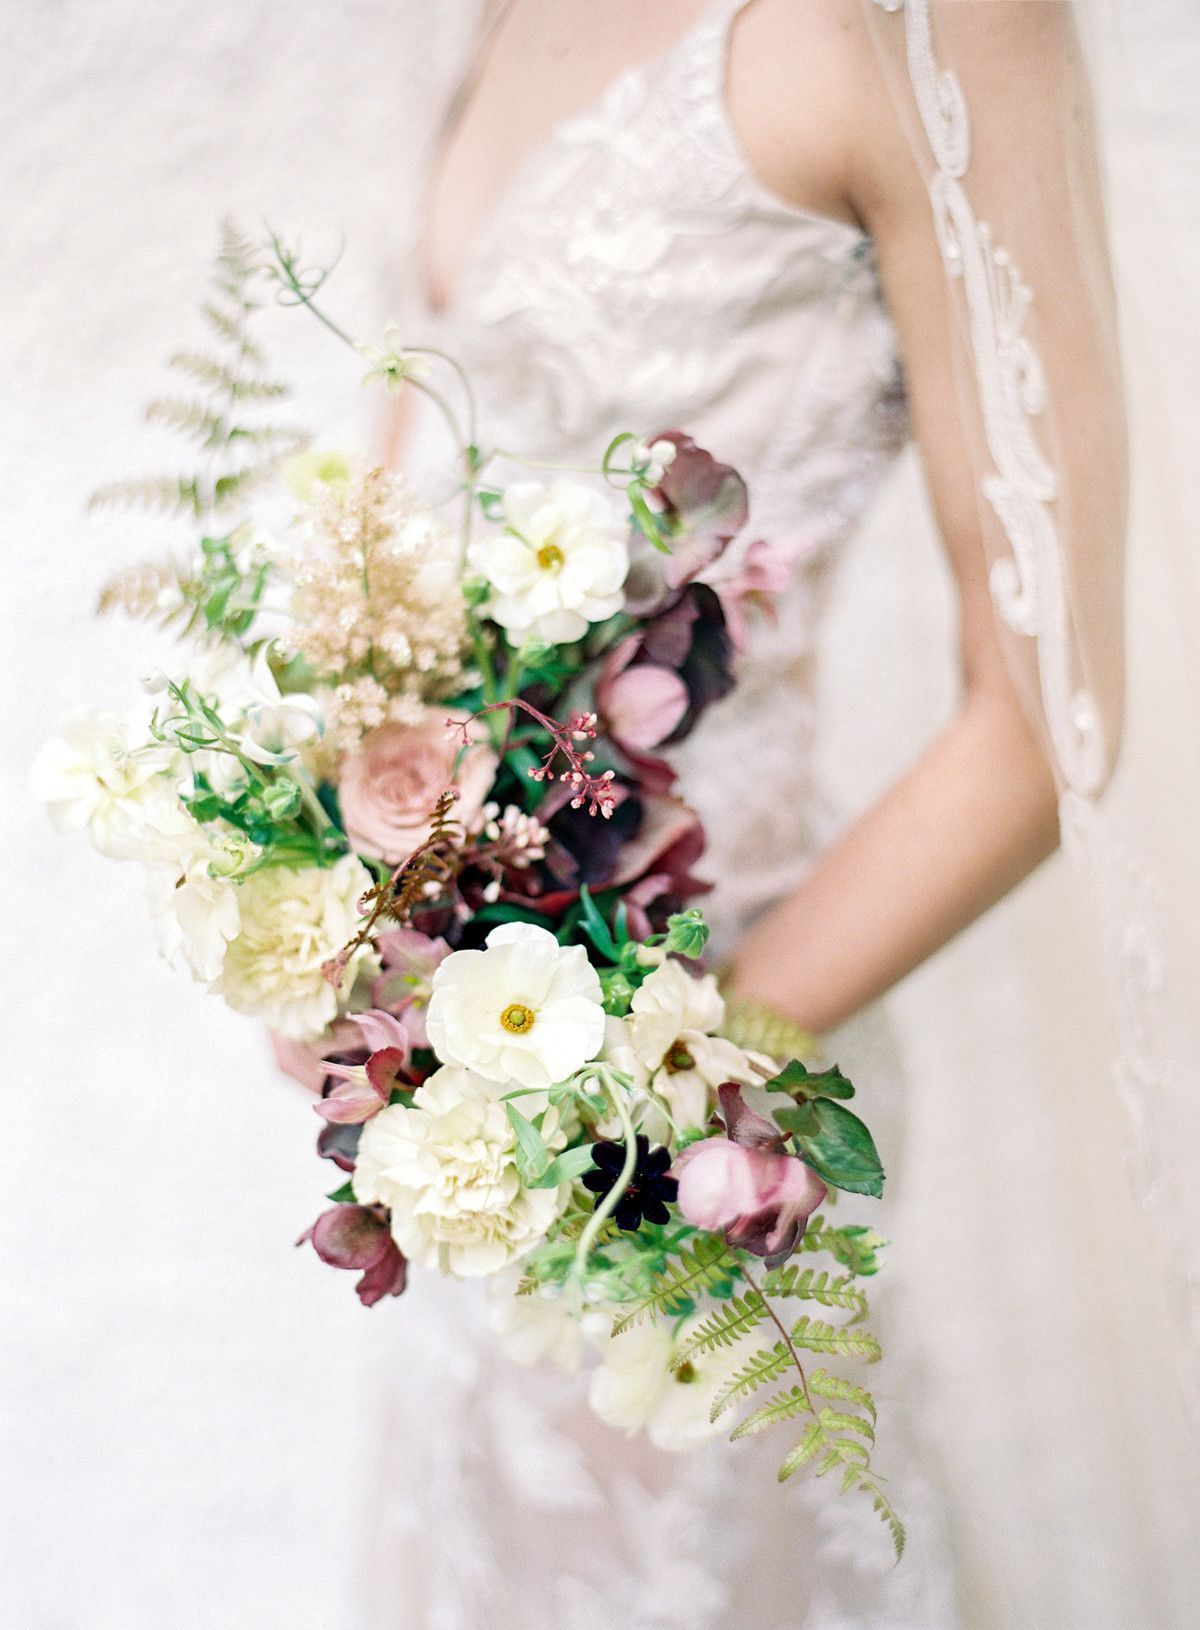 Wild Green Yonder's carnation, Japanese anemone, orchid, fern, and astilbe bouquet / Victorian #astilbebouquet Wild Green Yonder's carnation, Japanese anemone, orchid, fern, and astilbe bouquet / Victorian #astilbebouquet